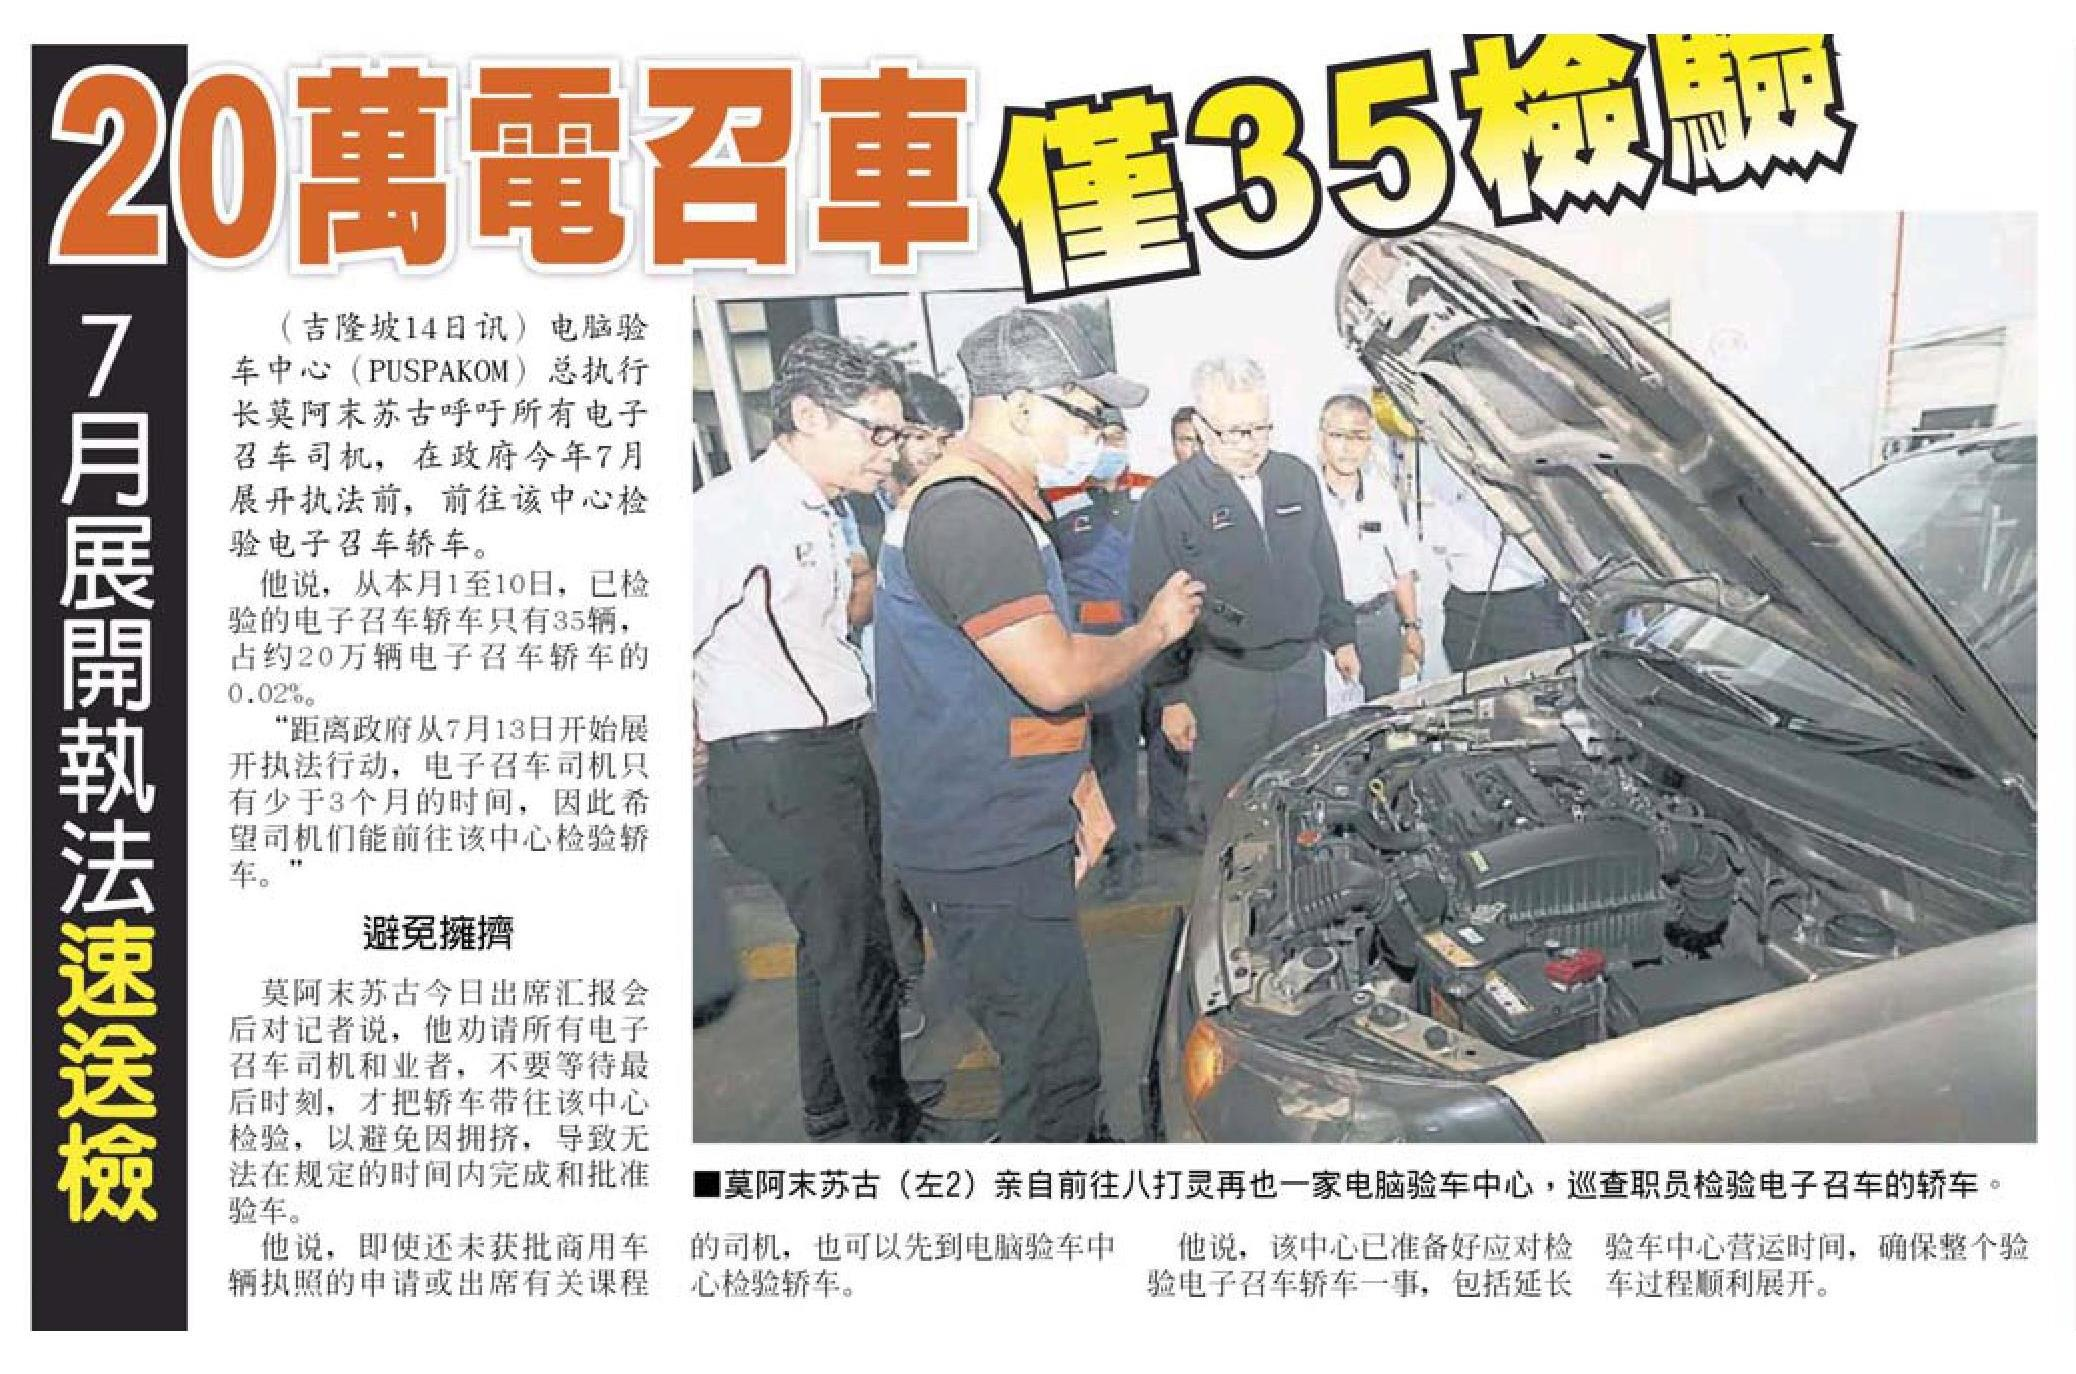 China Press_15.4_Only 35 out of 200,000 E-Hailing vehicles inspected